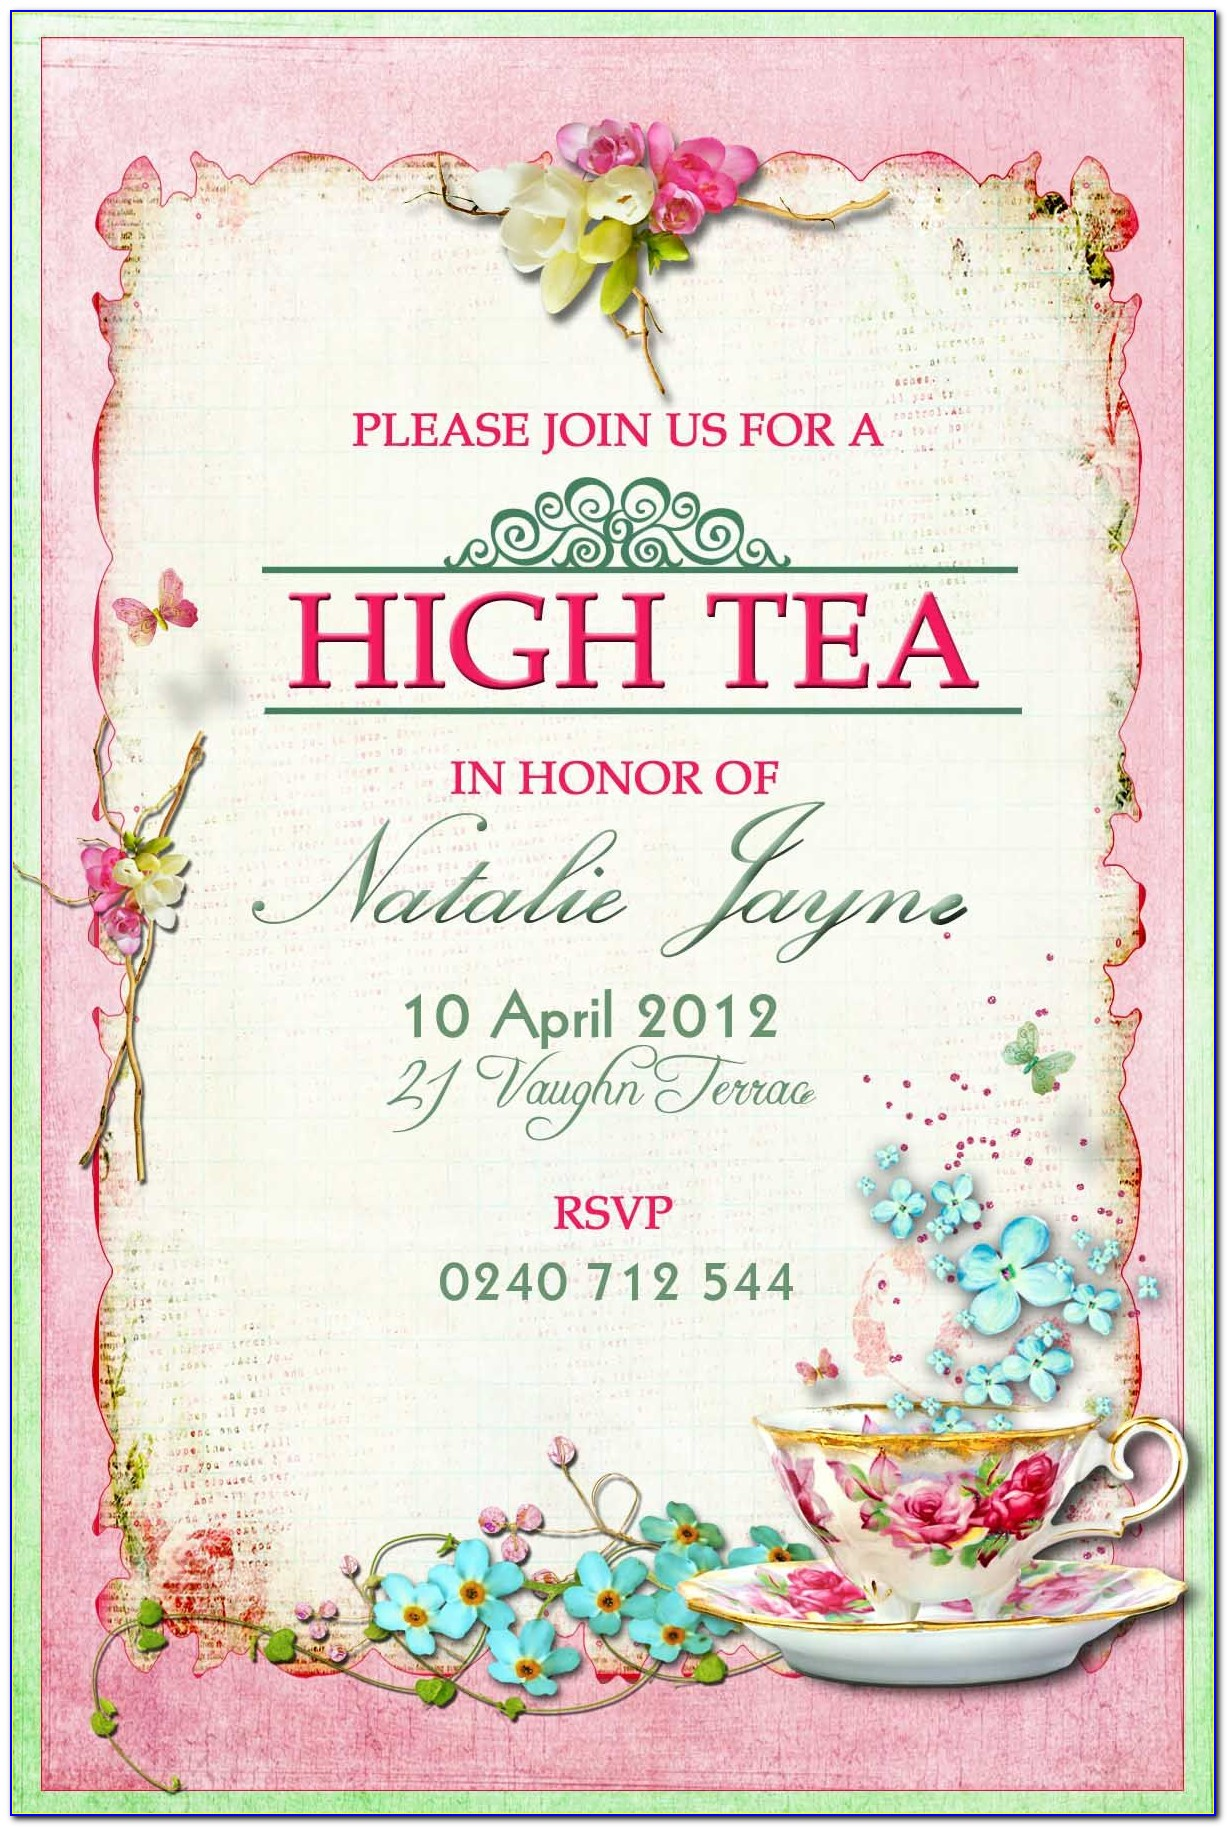 Afternoon Tea Invite Template